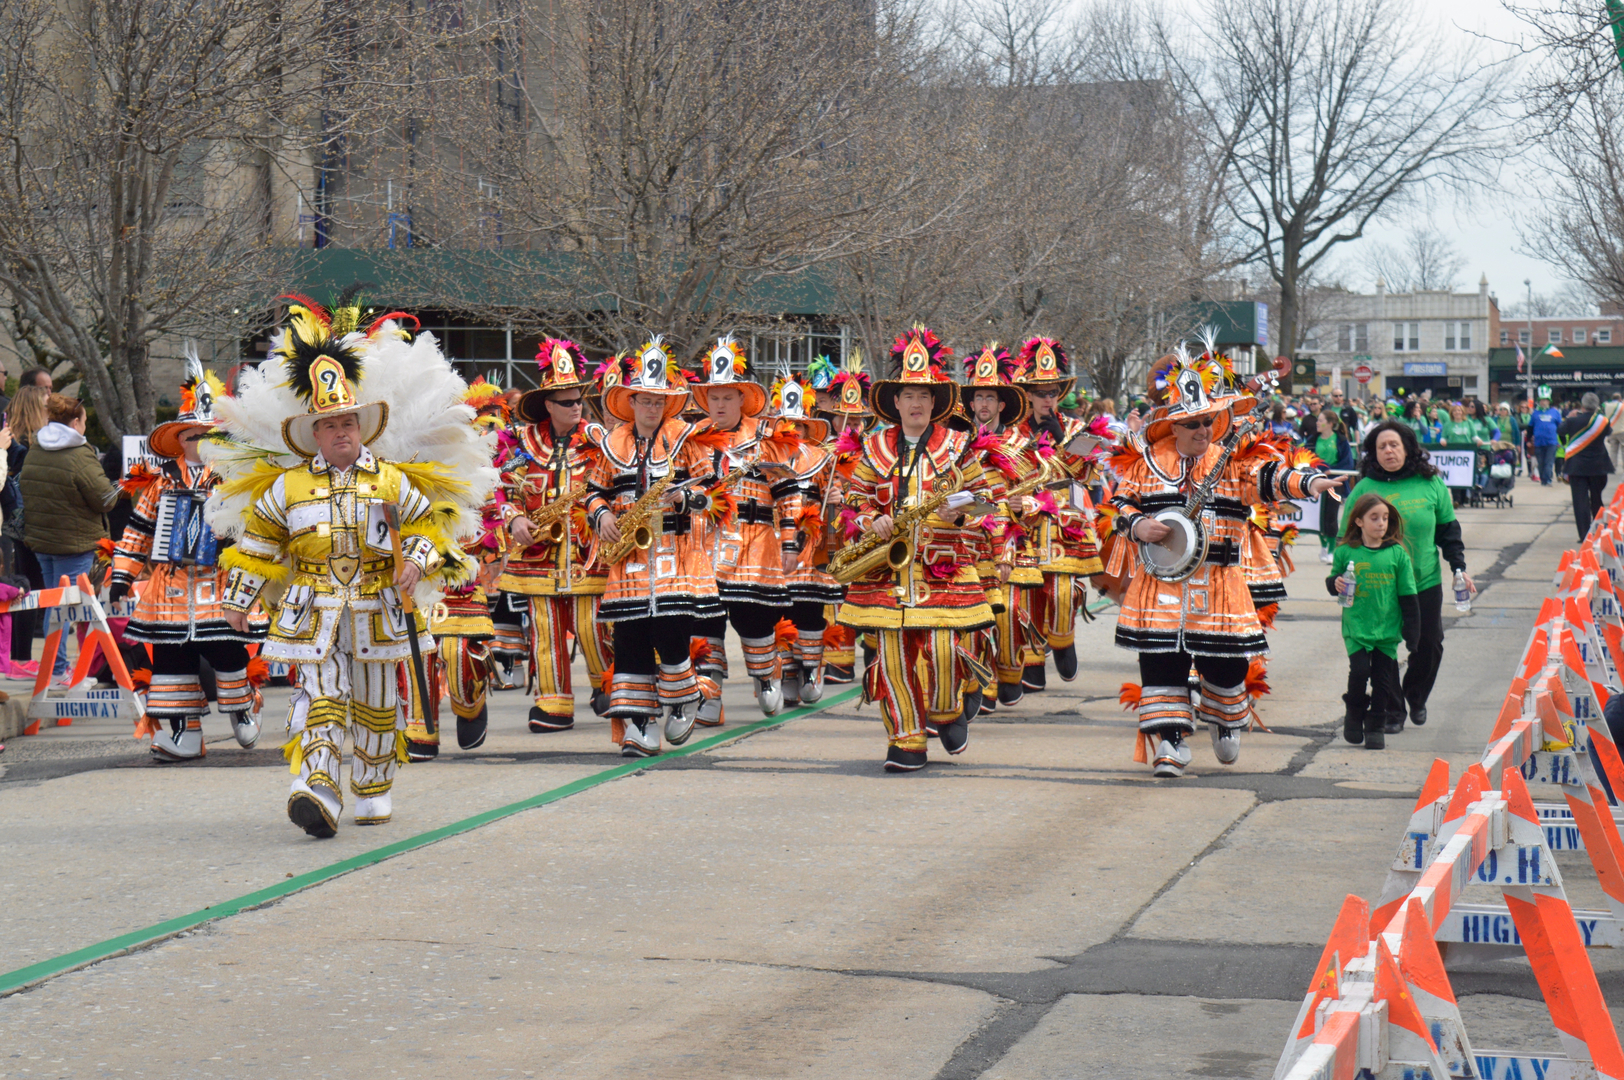 How to take great parade photos that you will like?